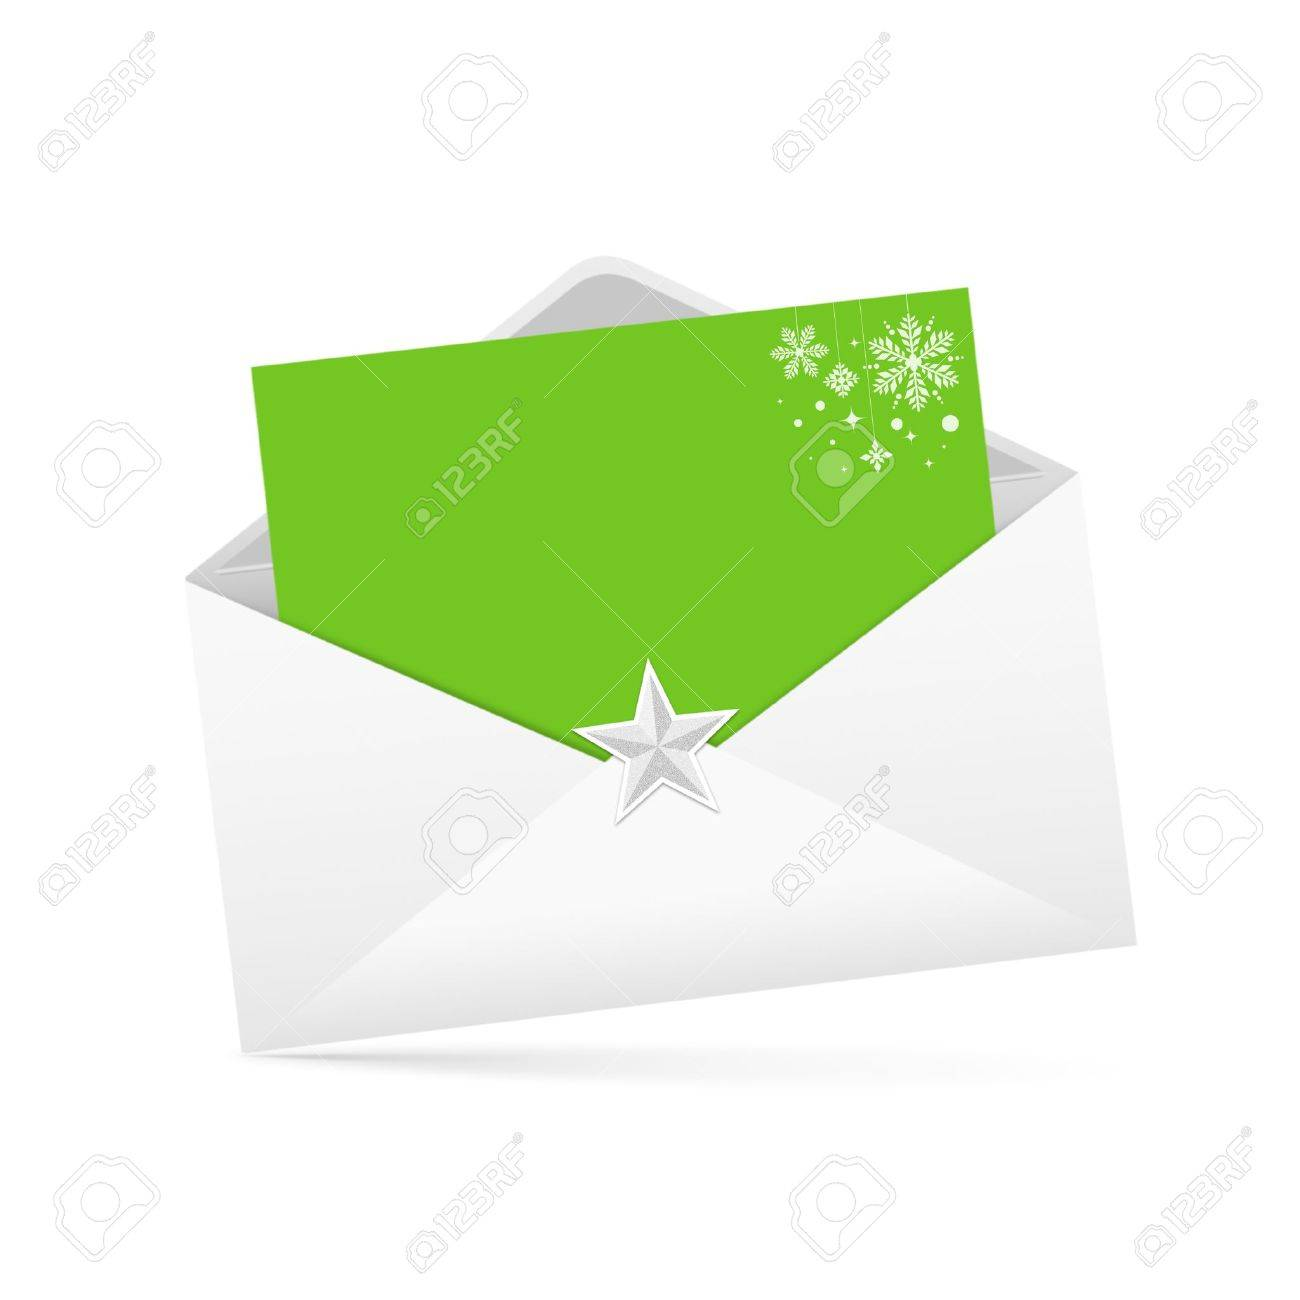 Envelope letter and green paper merry christmas isolated Stock Photo - 11484614